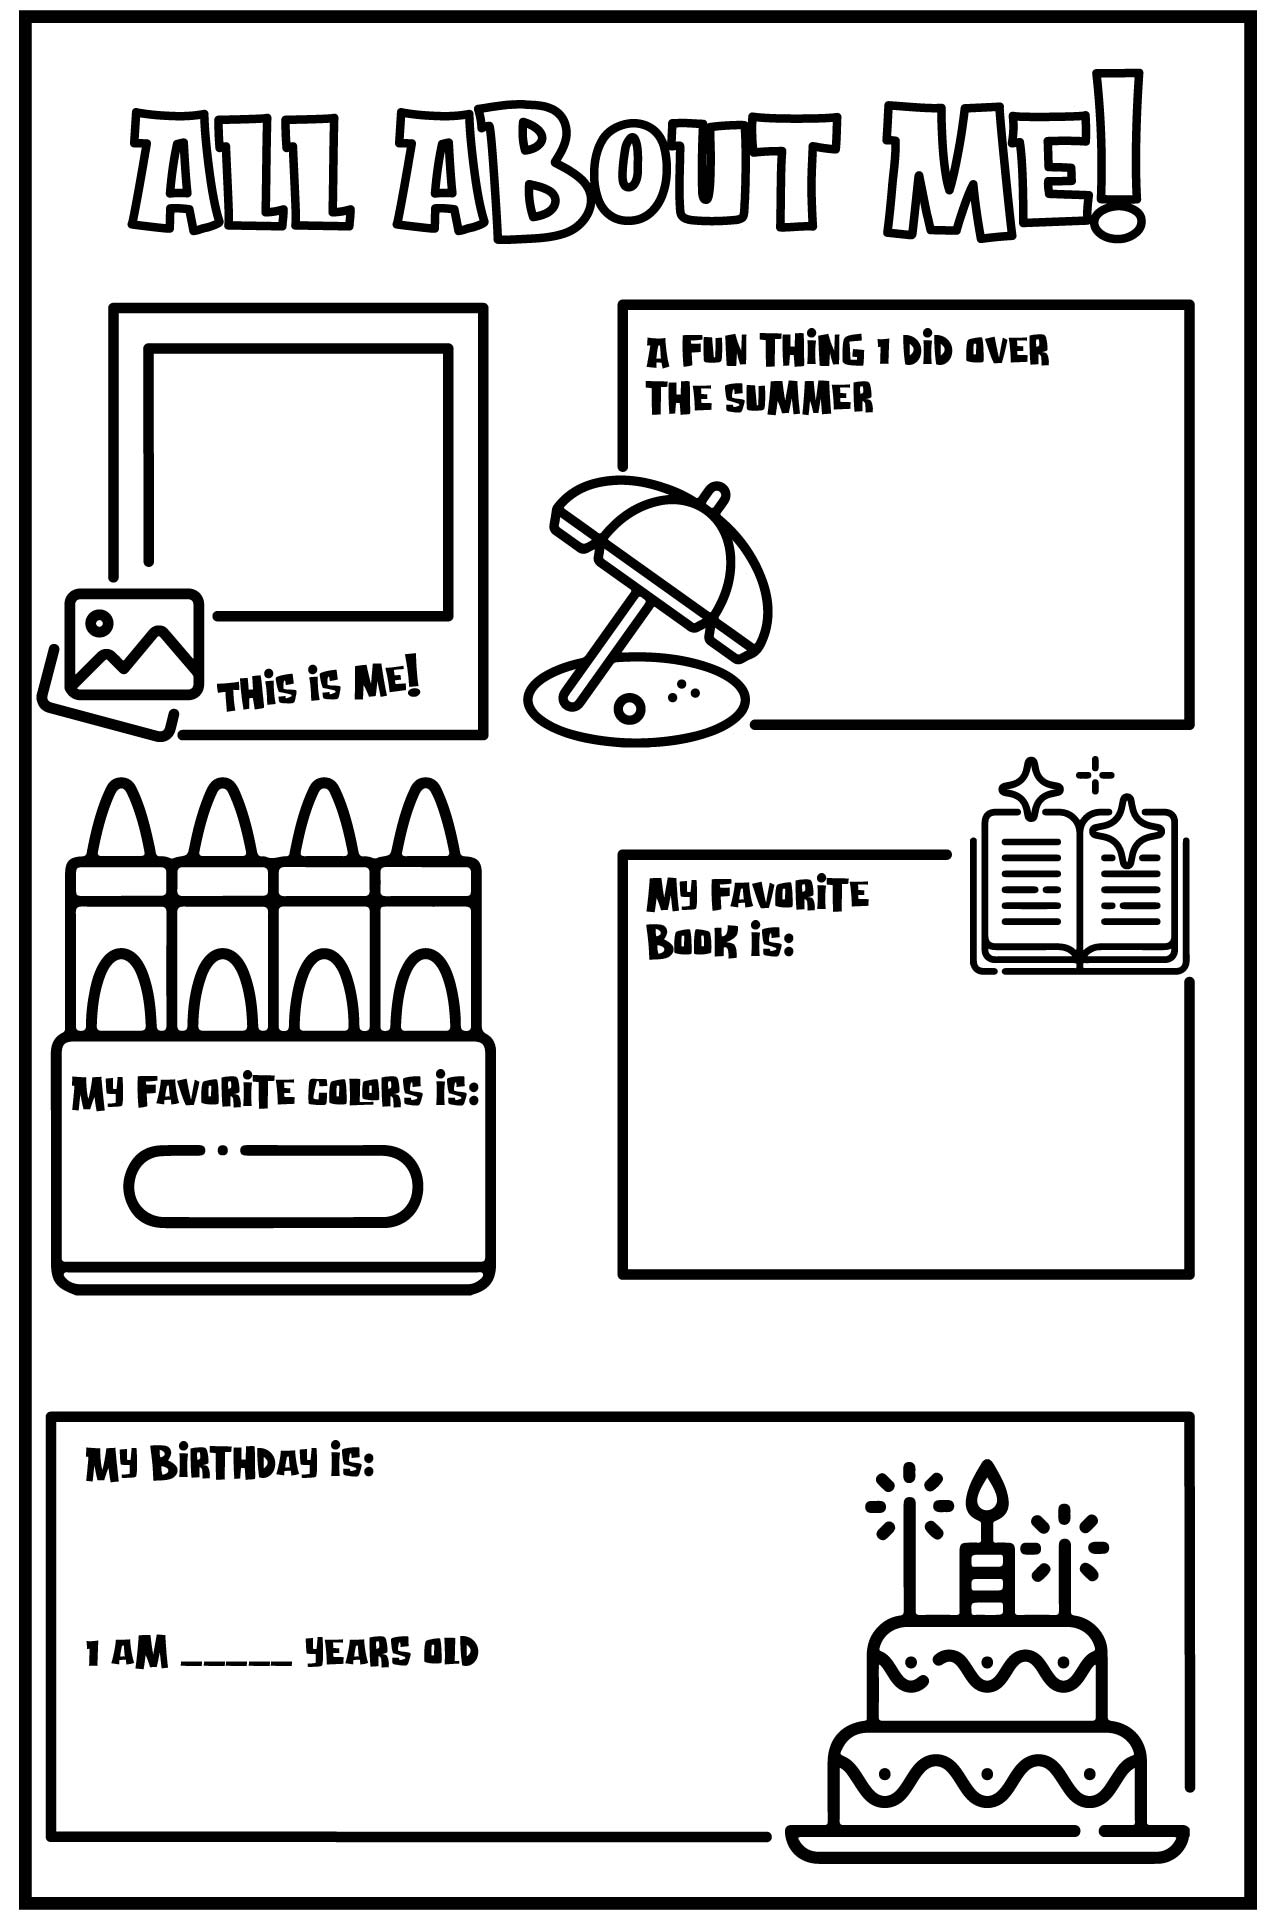 See All About Me Template Worksheet, All About Me Worksheets ...